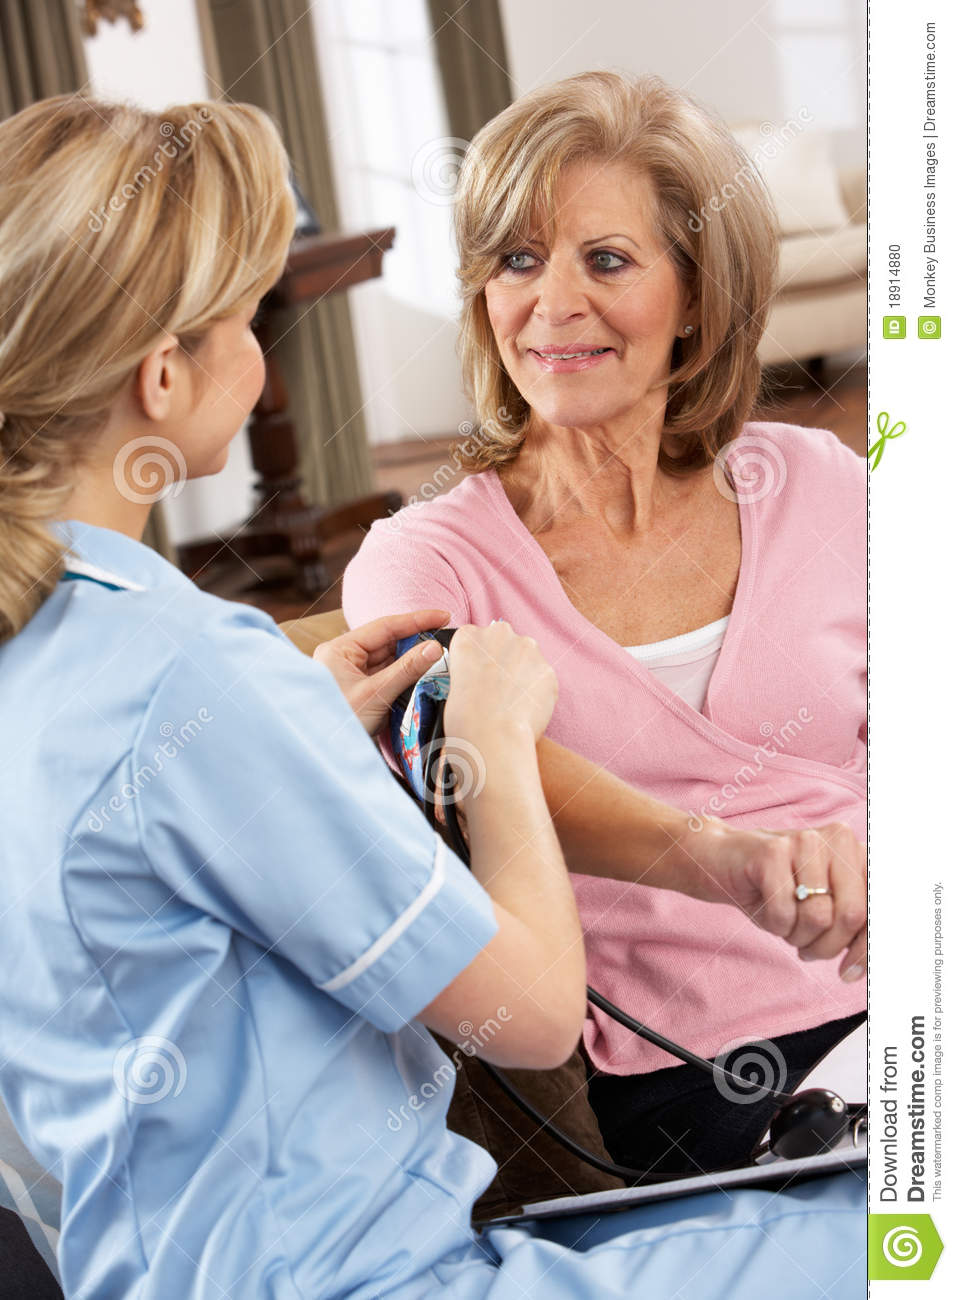 Health Visitor Taking Woman s Blood Pressure